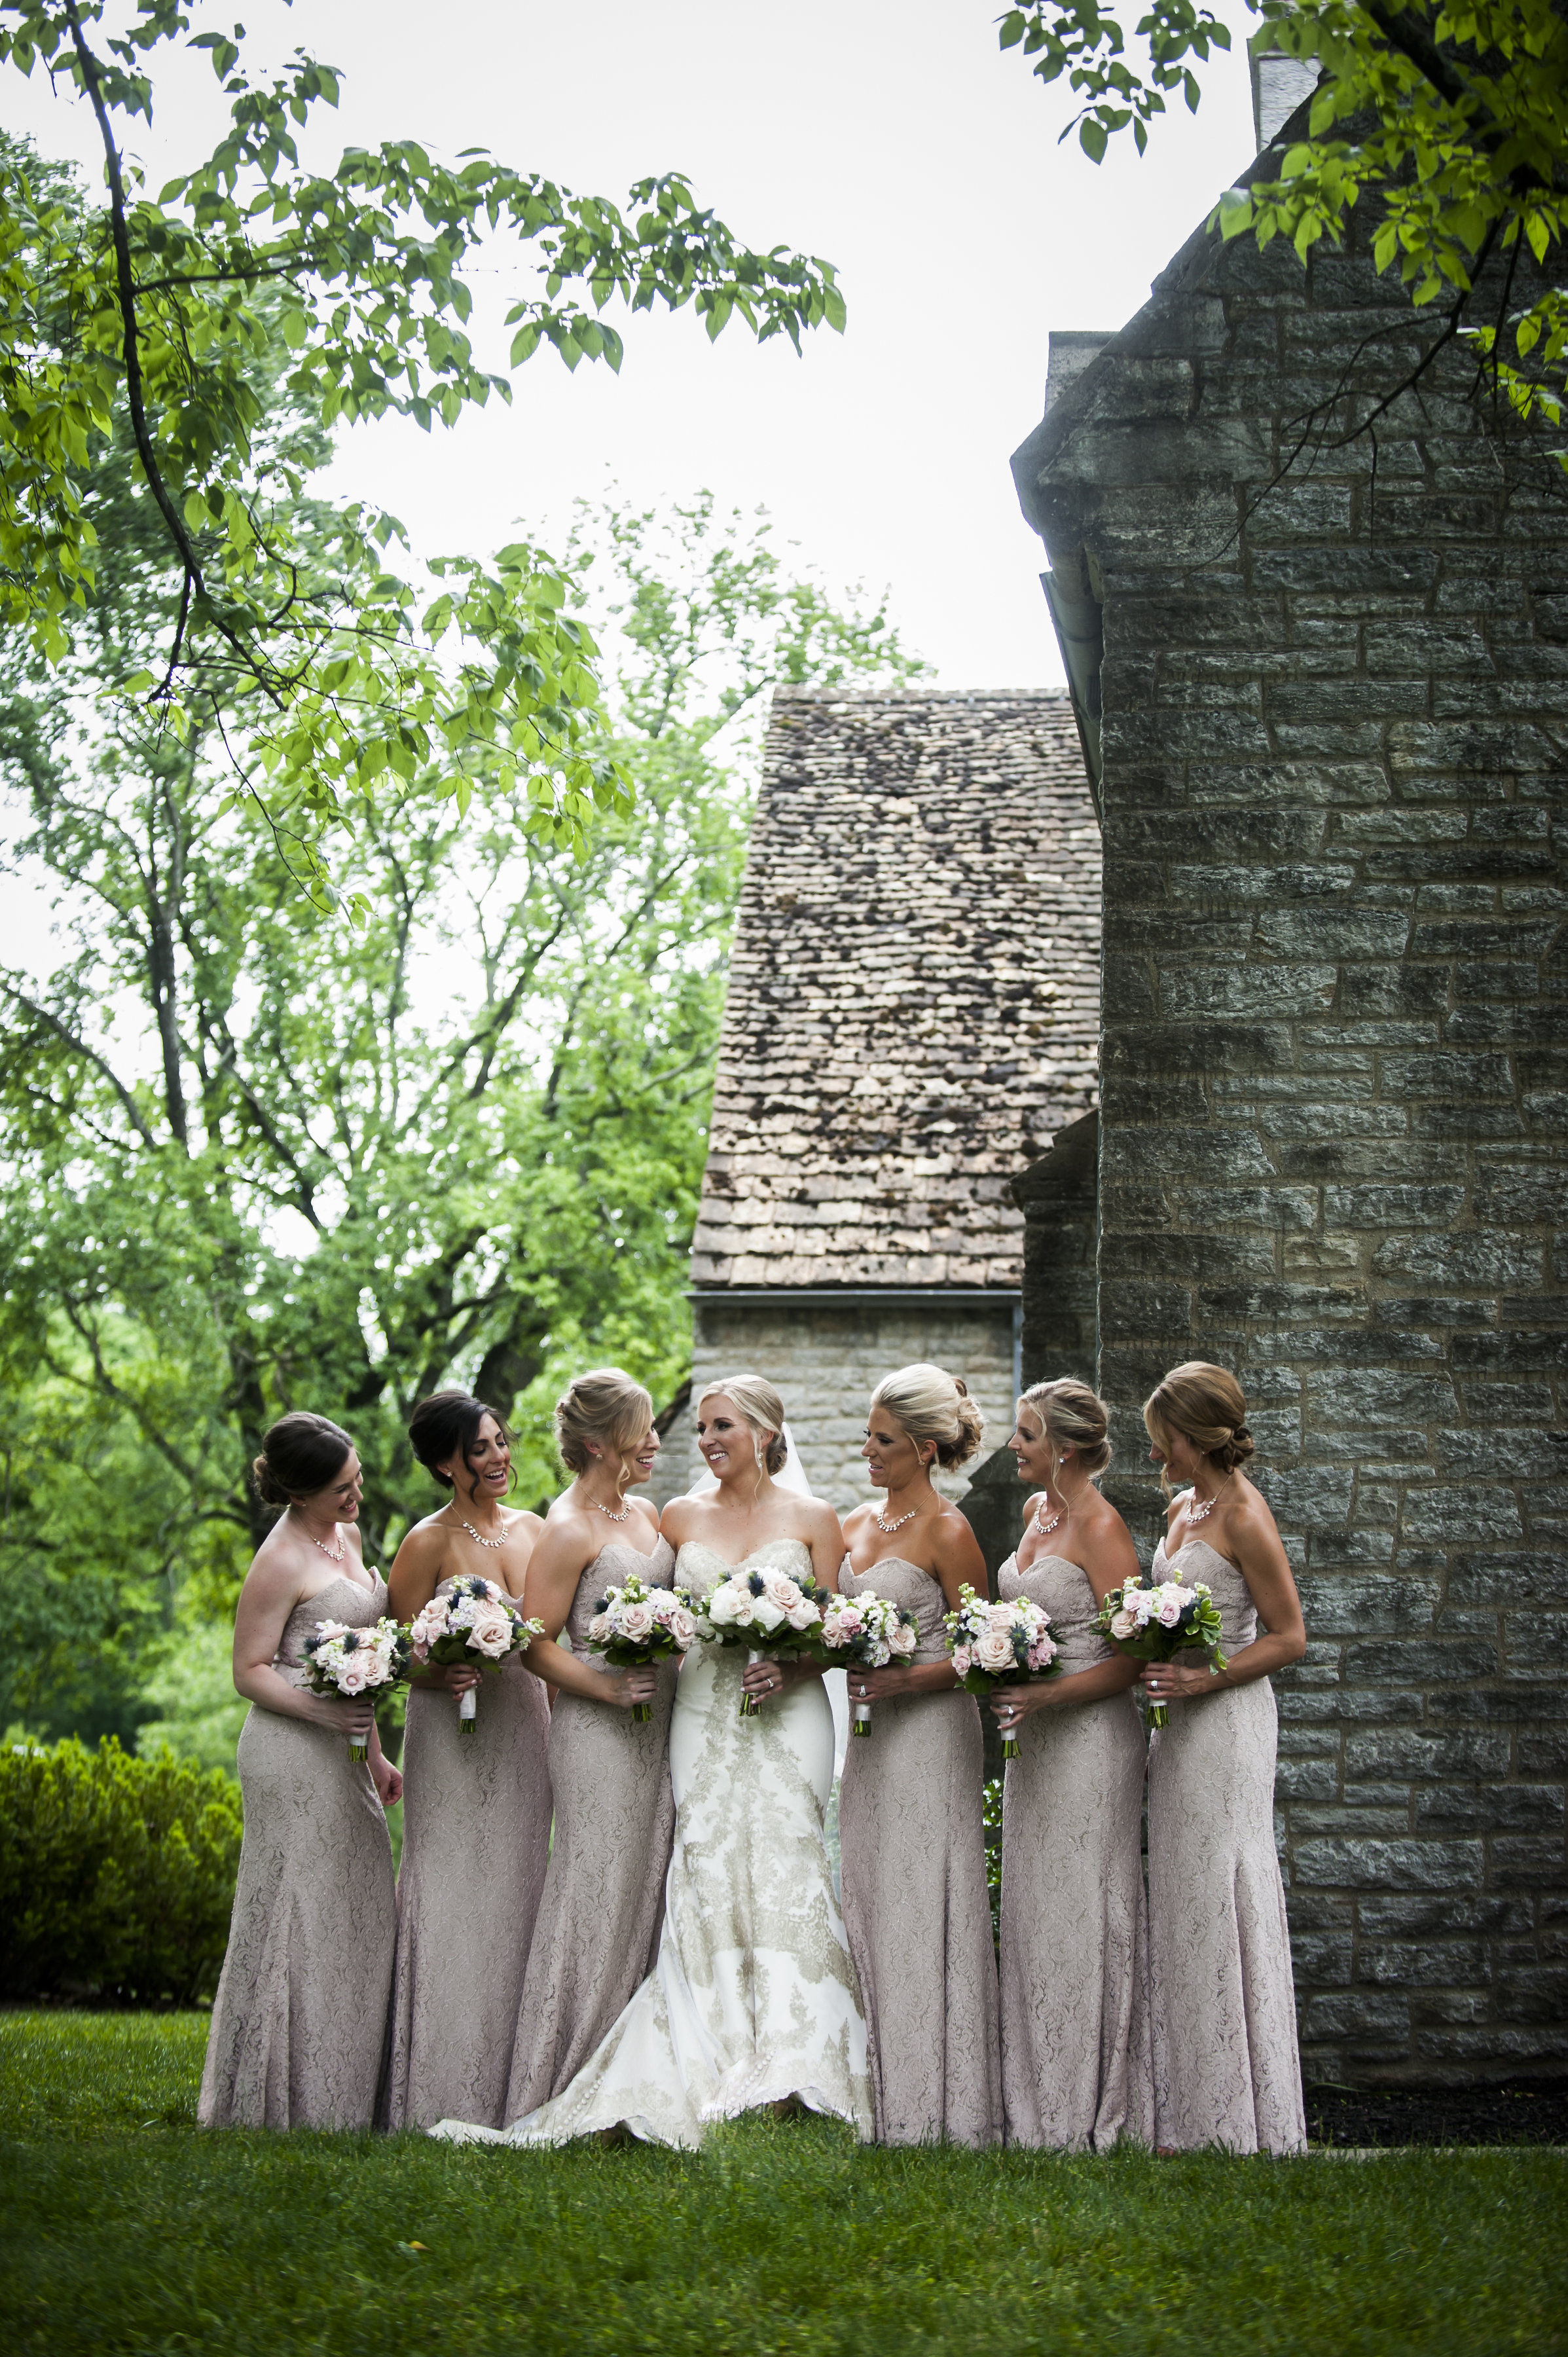 Greenery and Bridal party